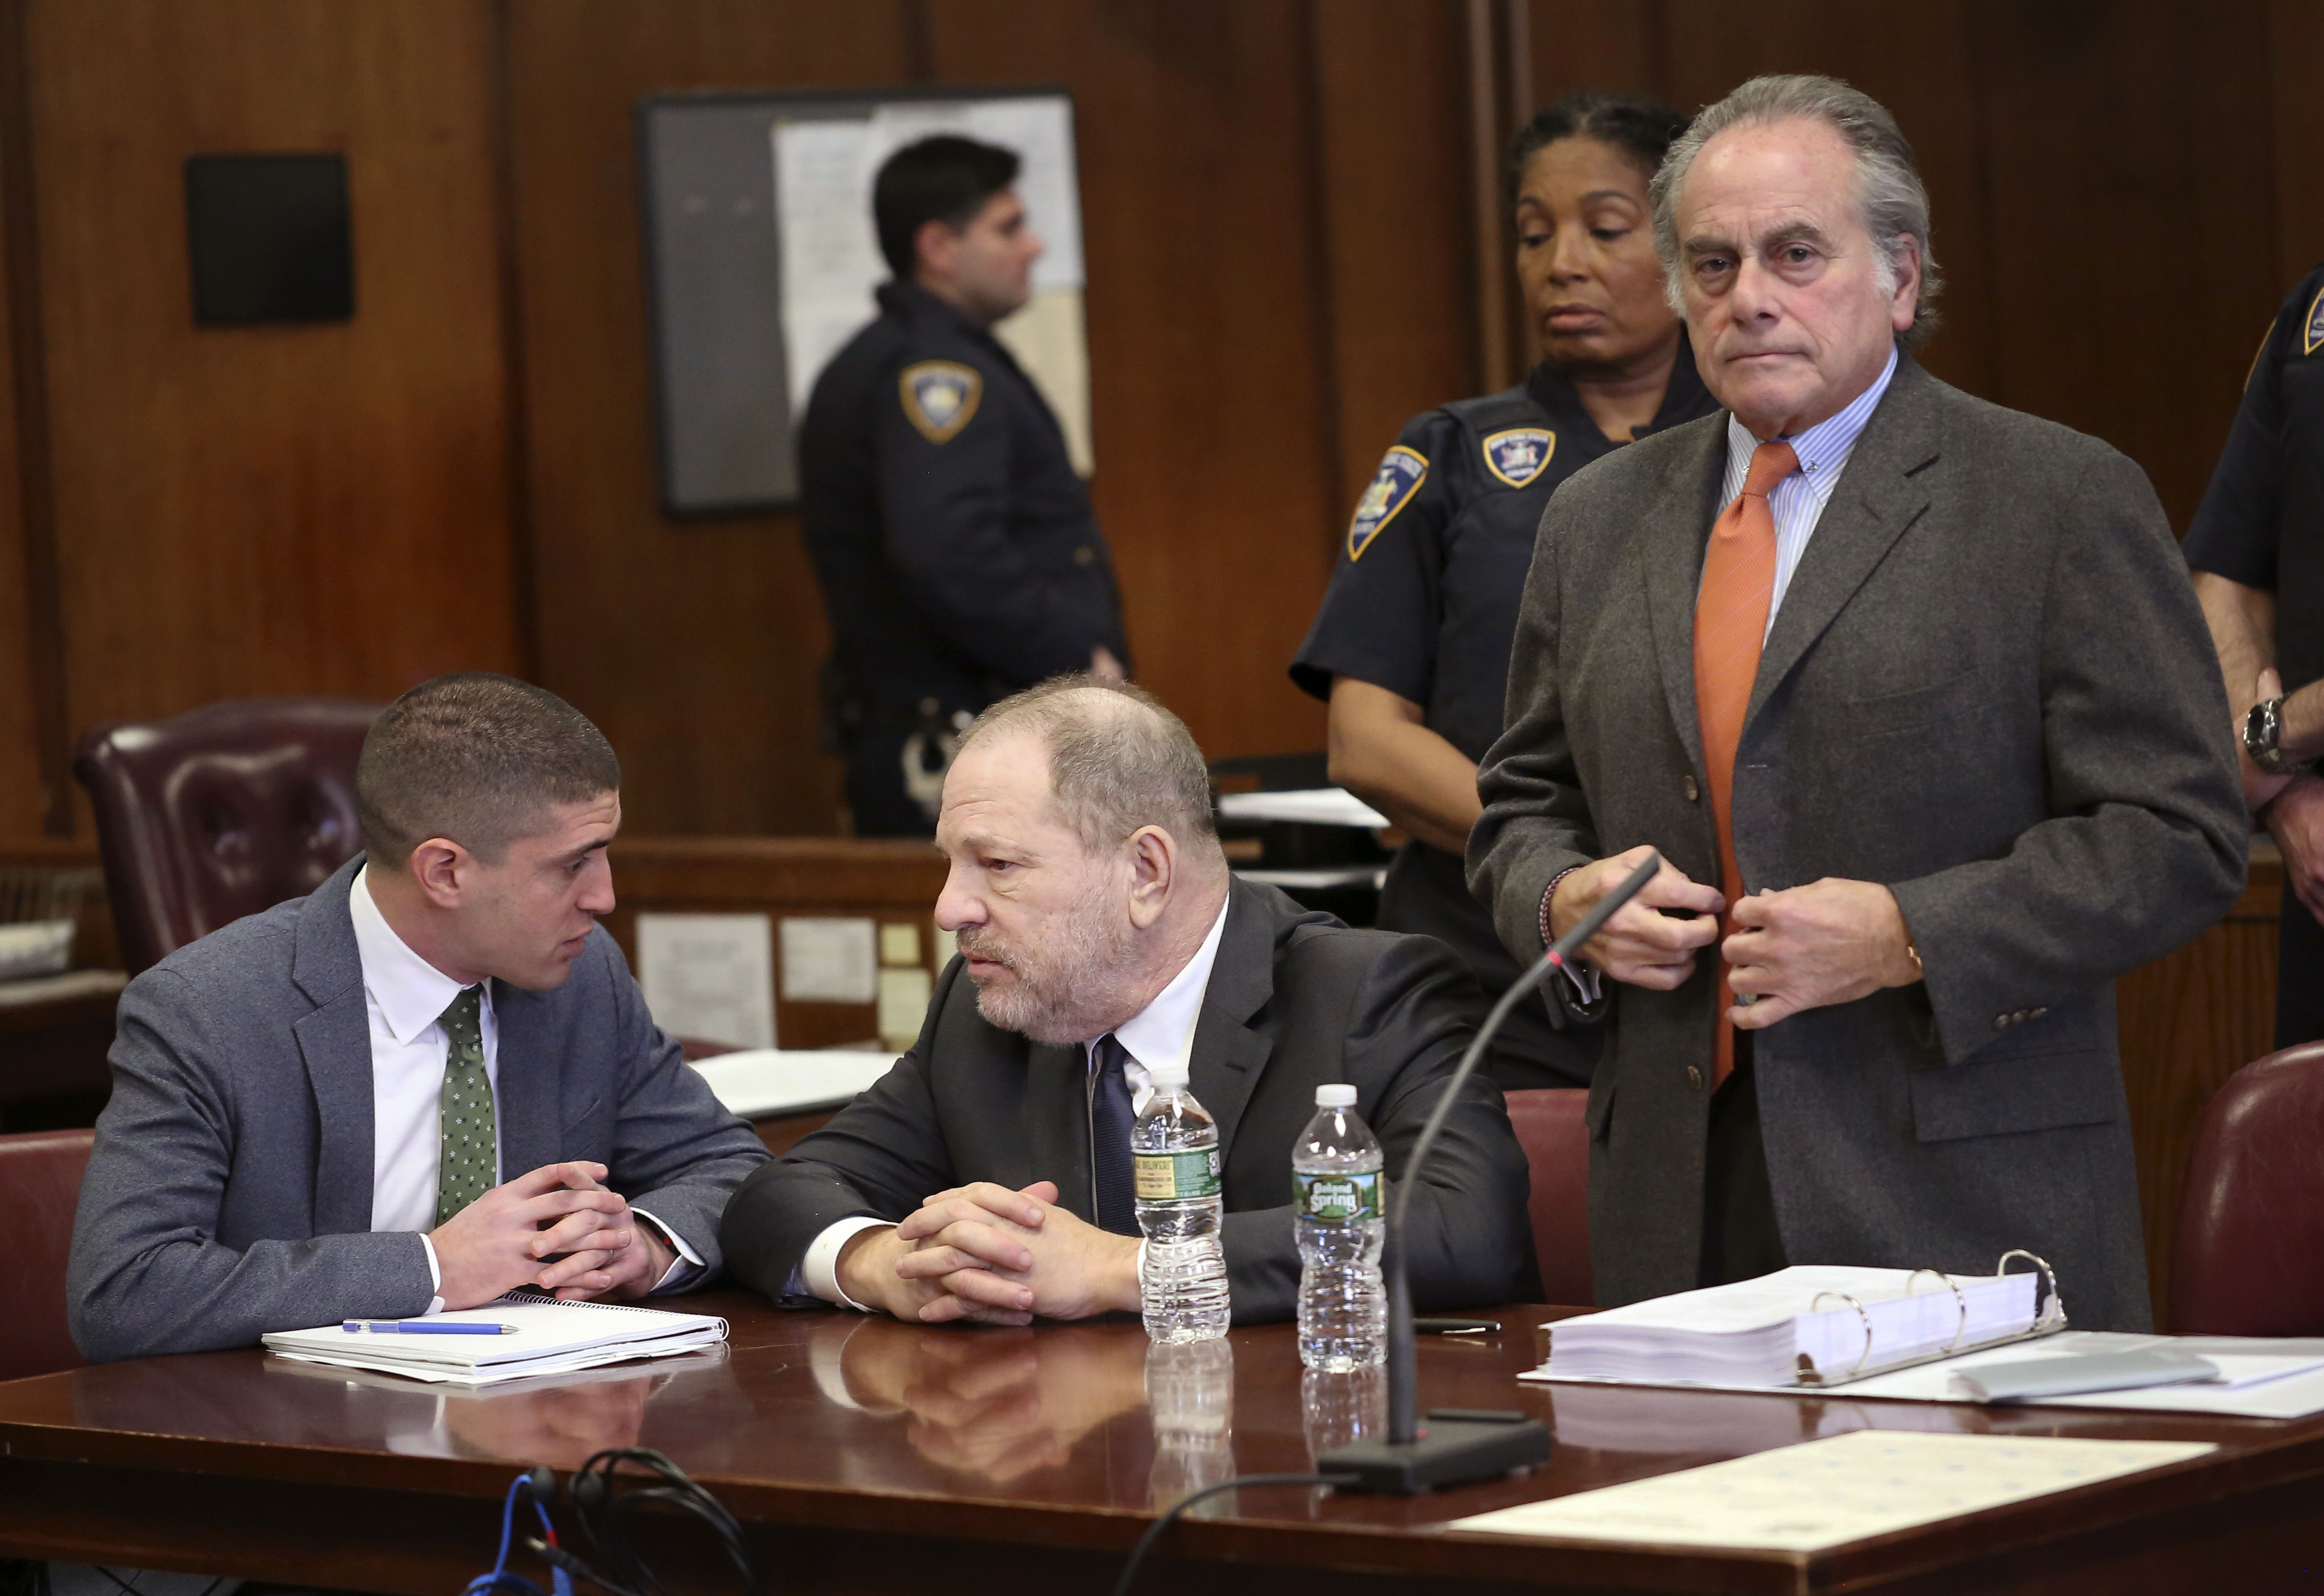 Harvey Weinstein, centre, and his lawyer Benjamin Brafman, right, make an appearance at New York Supreme Court